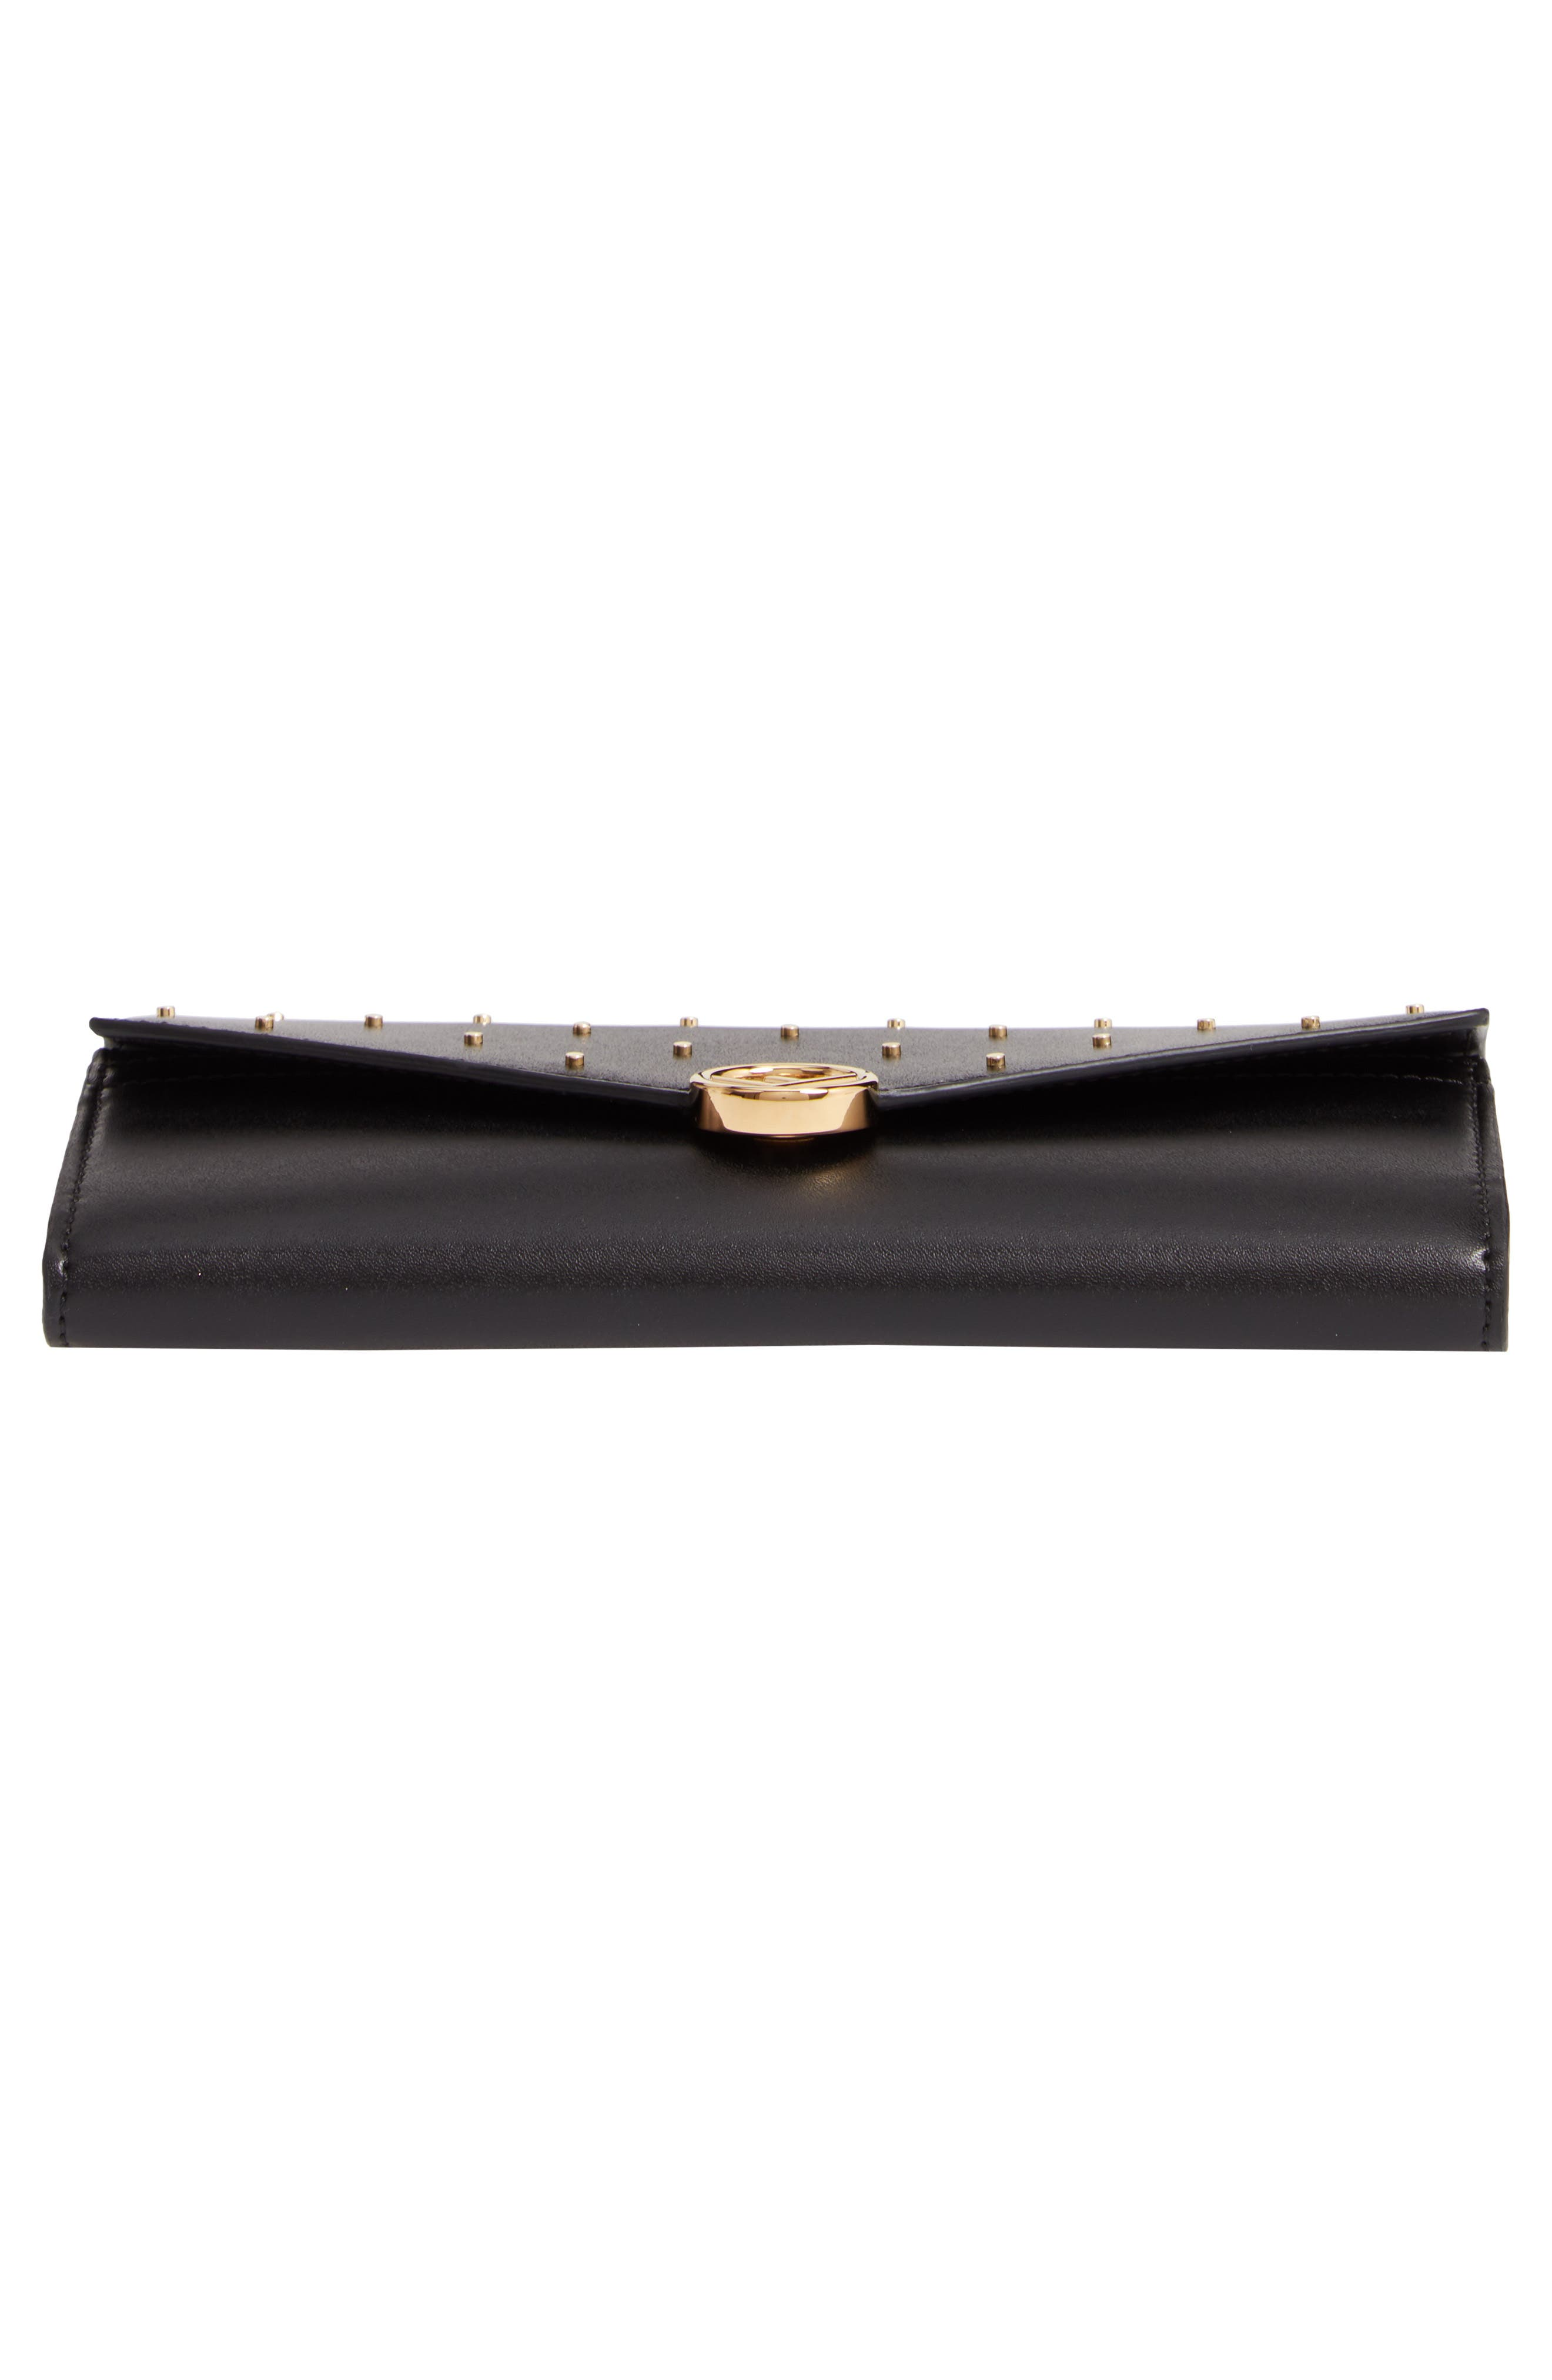 FENDI, Studded Calfskin Leather Continental Wallet on a Chain, Alternate thumbnail 6, color, 006